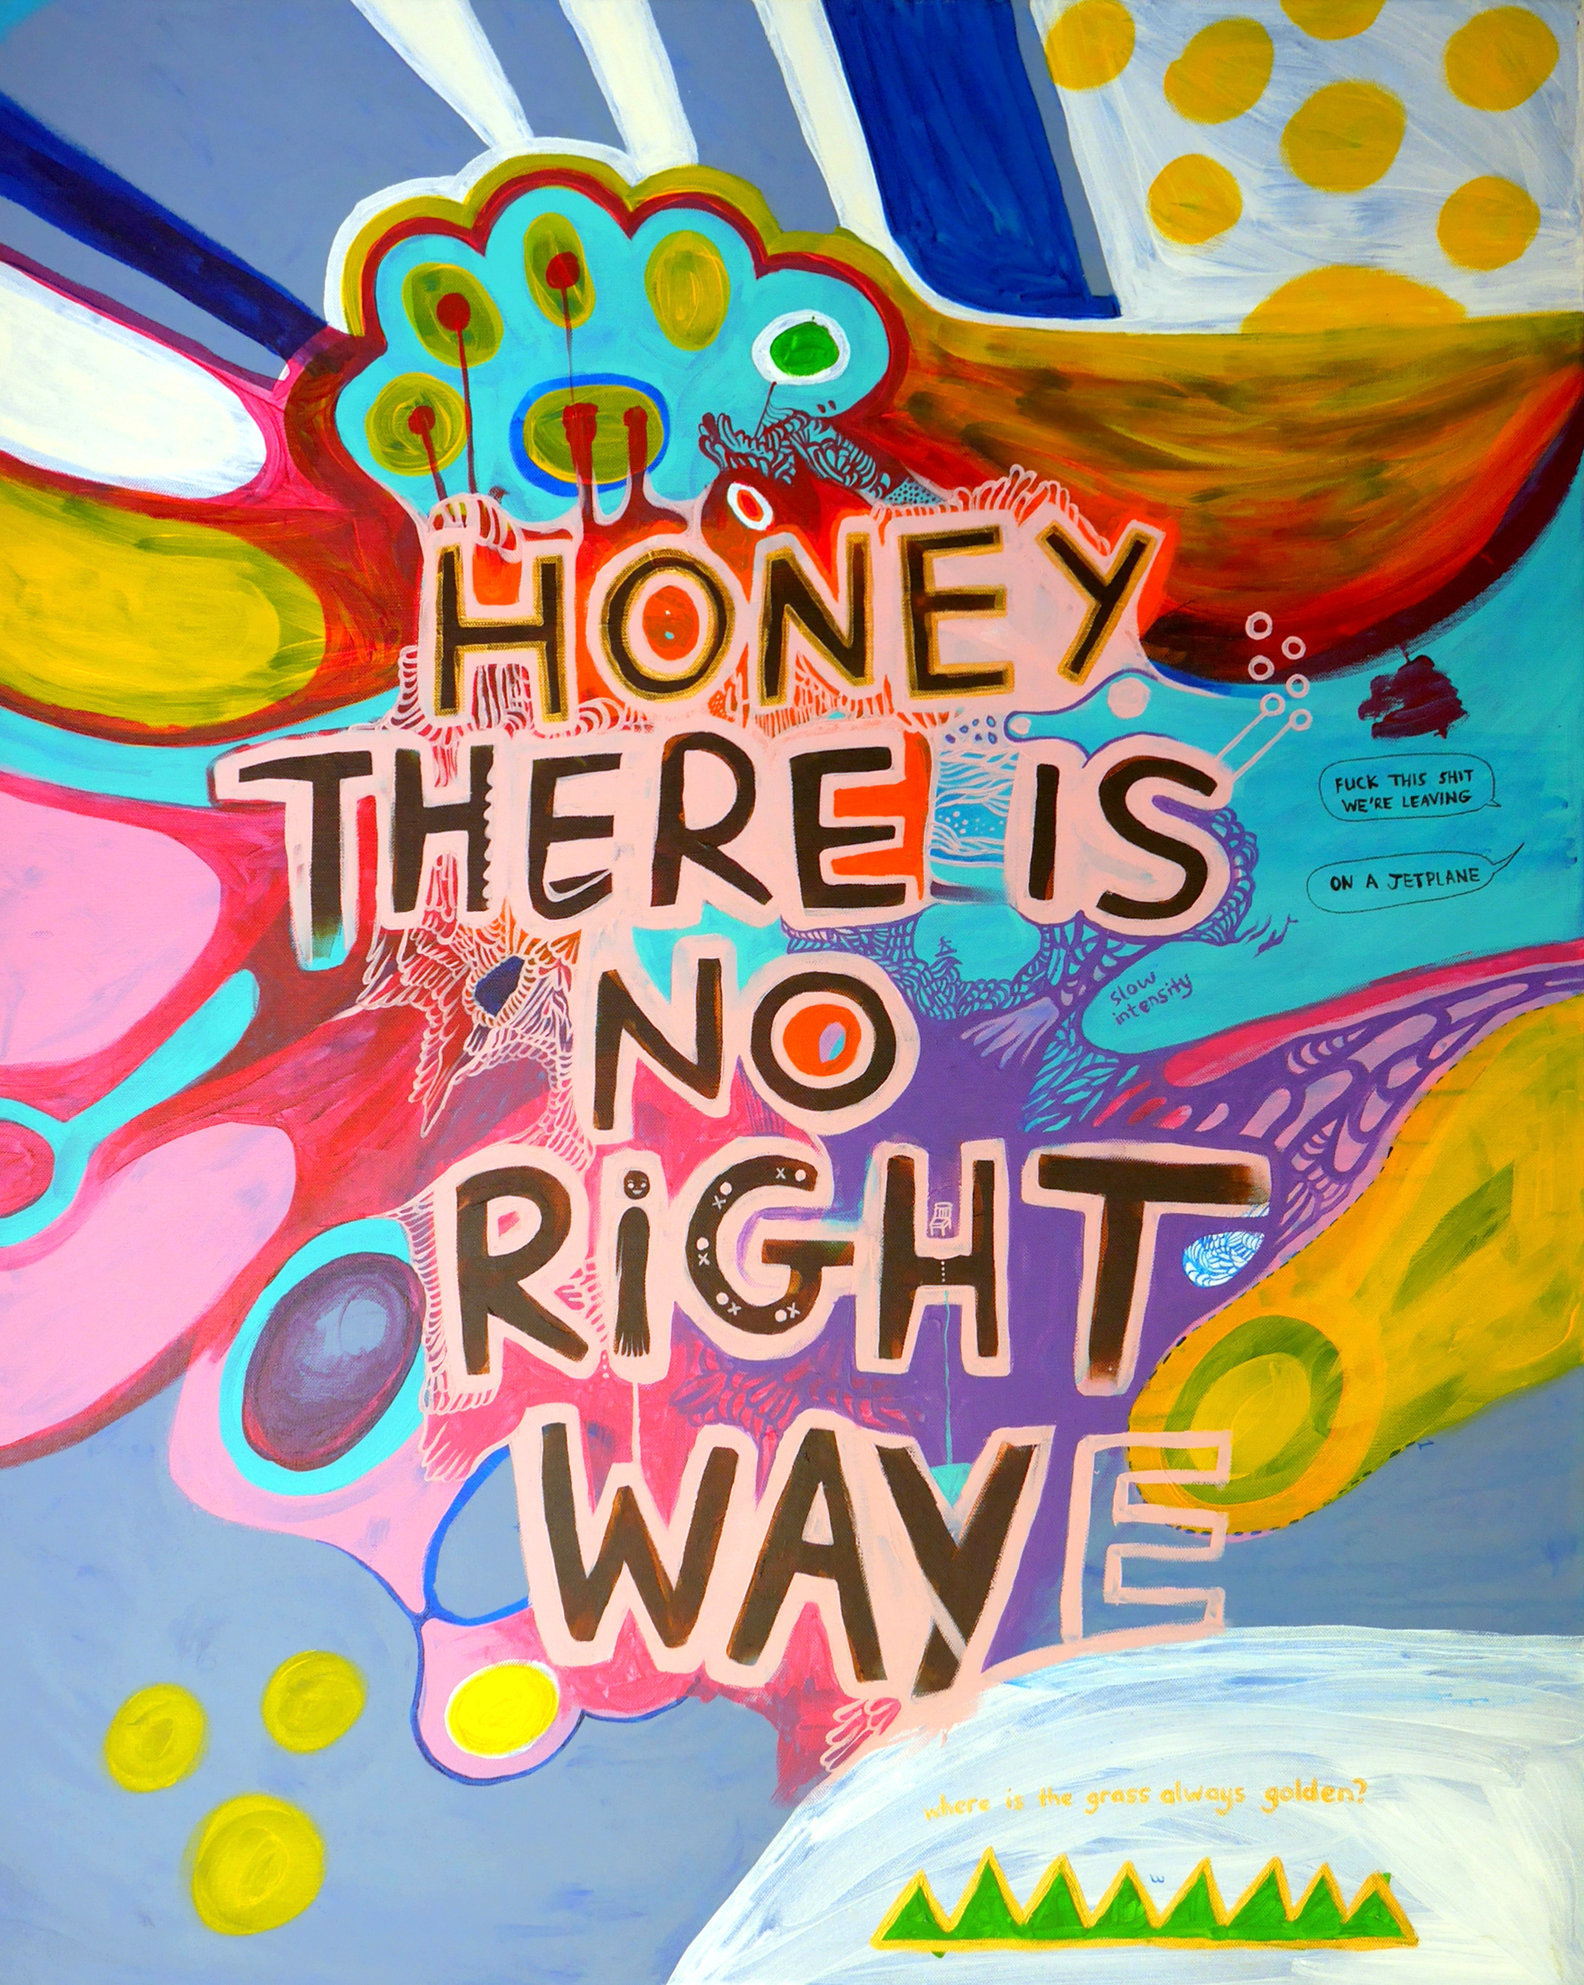 Honey, There is No Right Way (2016)